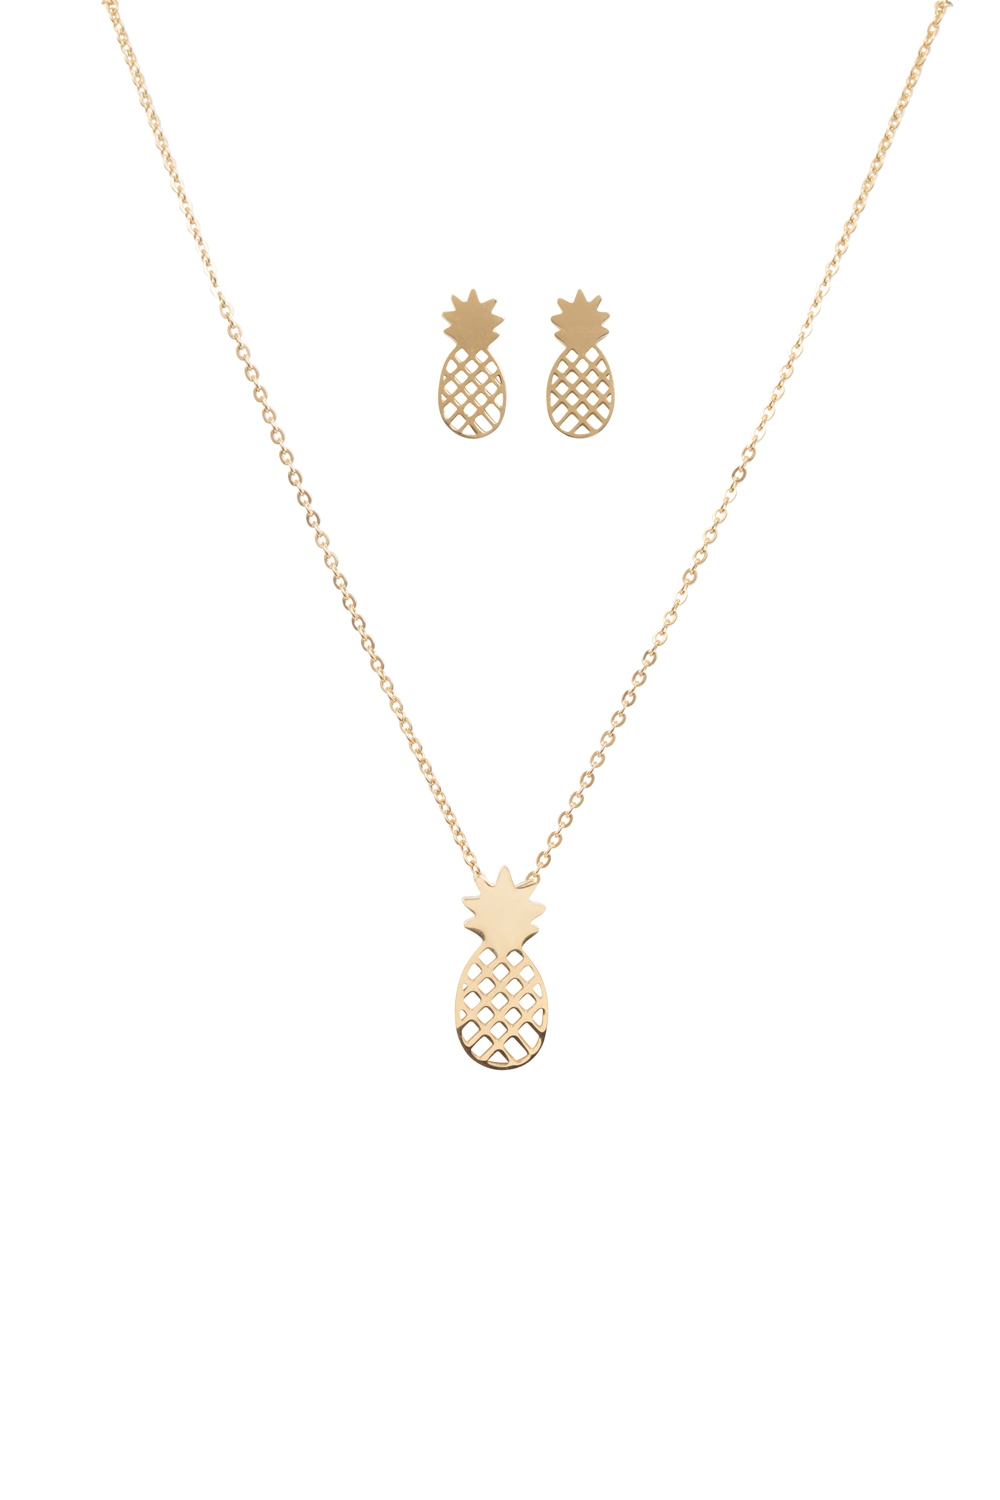 Pineapple Earring & Necklace Set